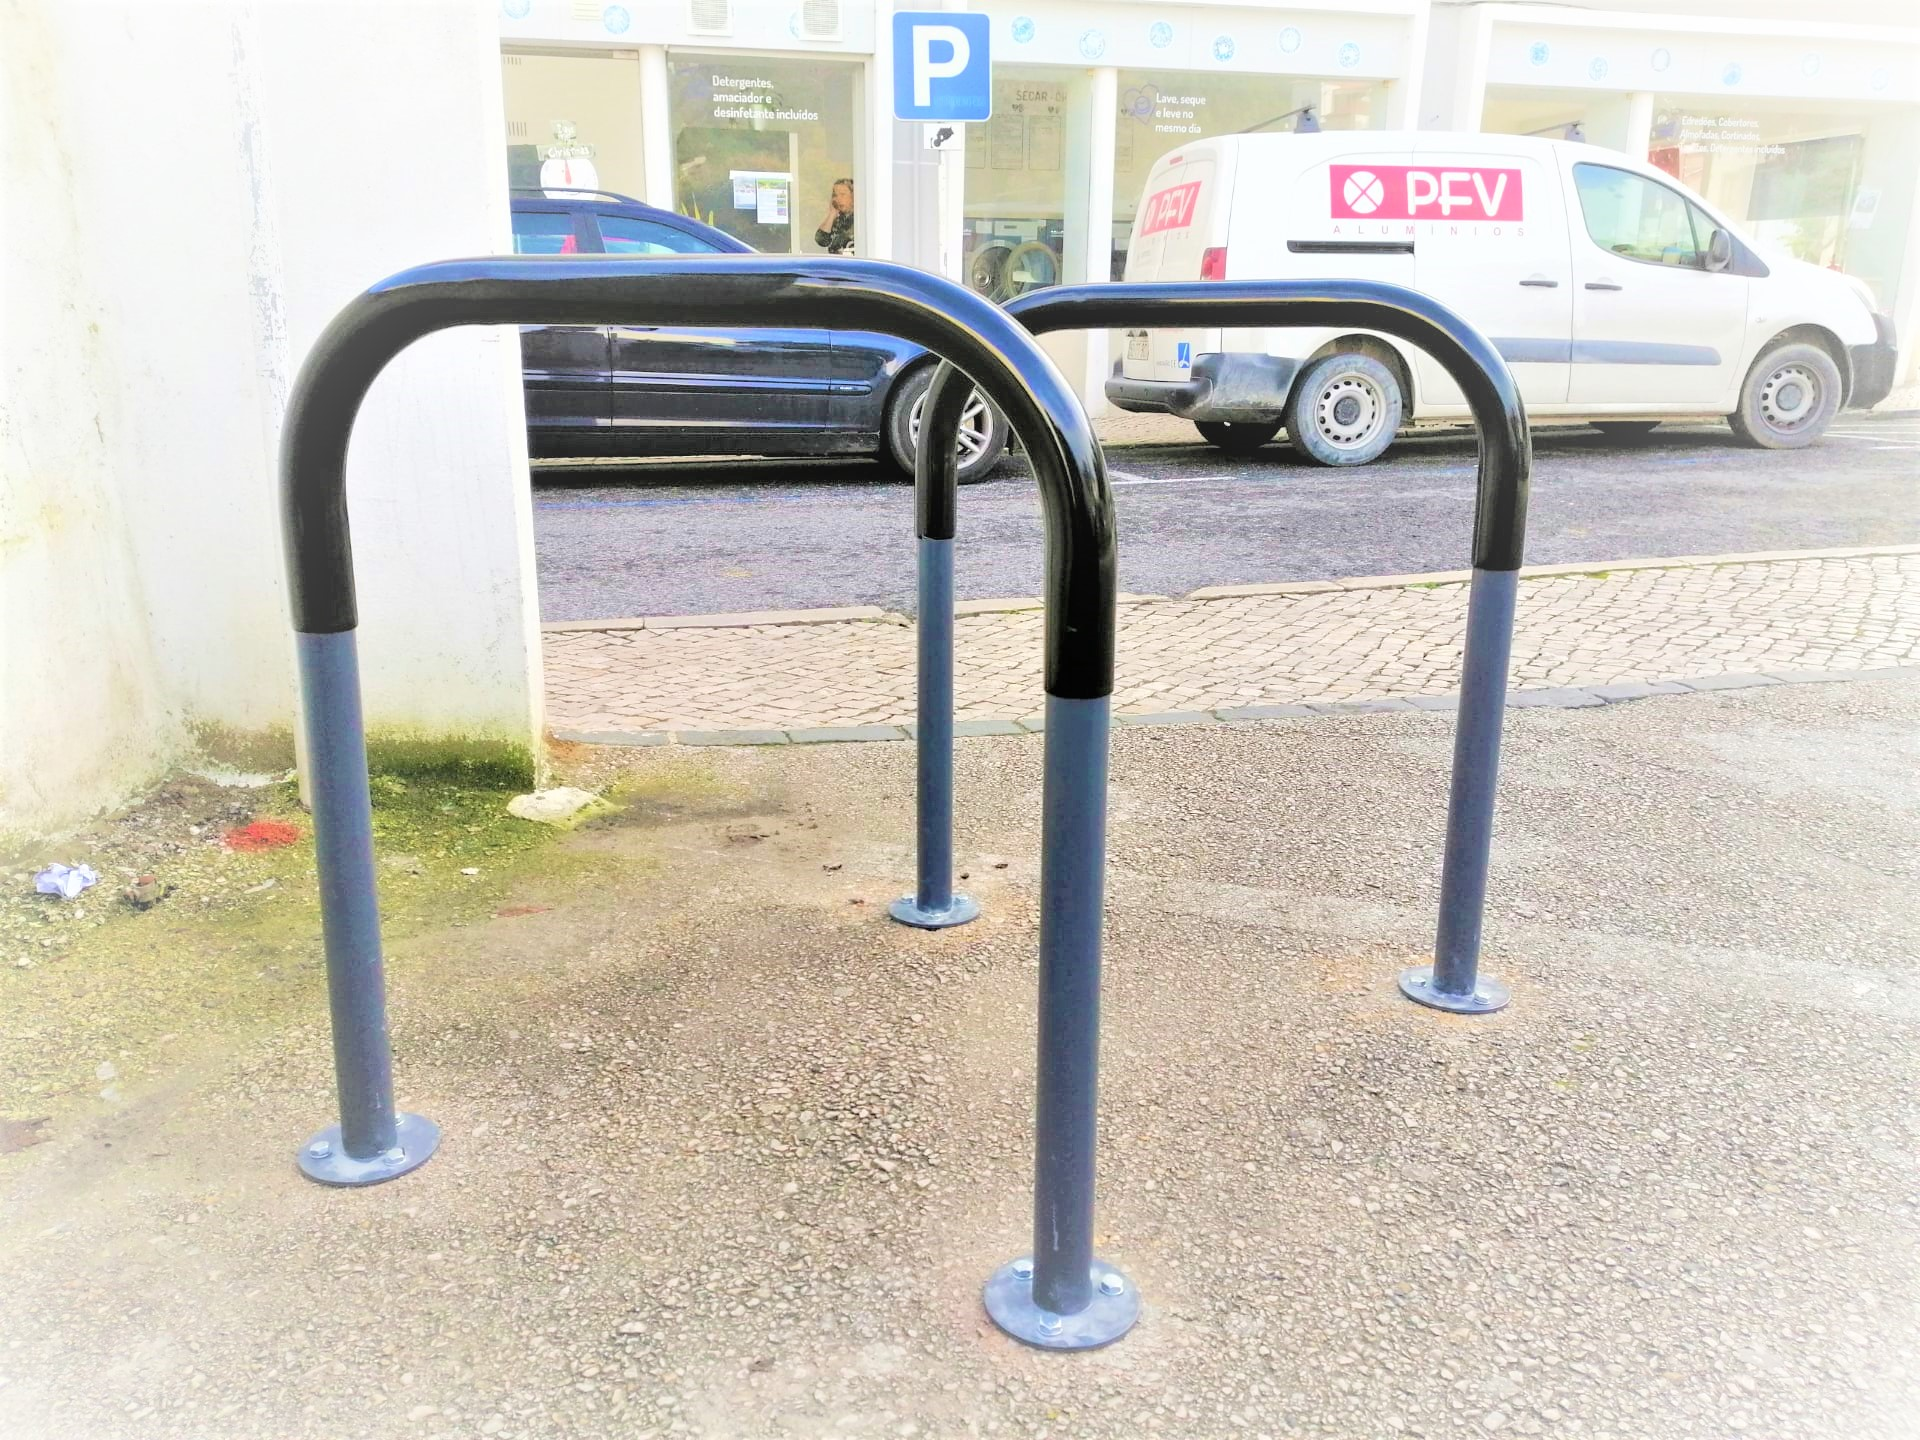 Biciparking Care Sheffield Parking Rubber